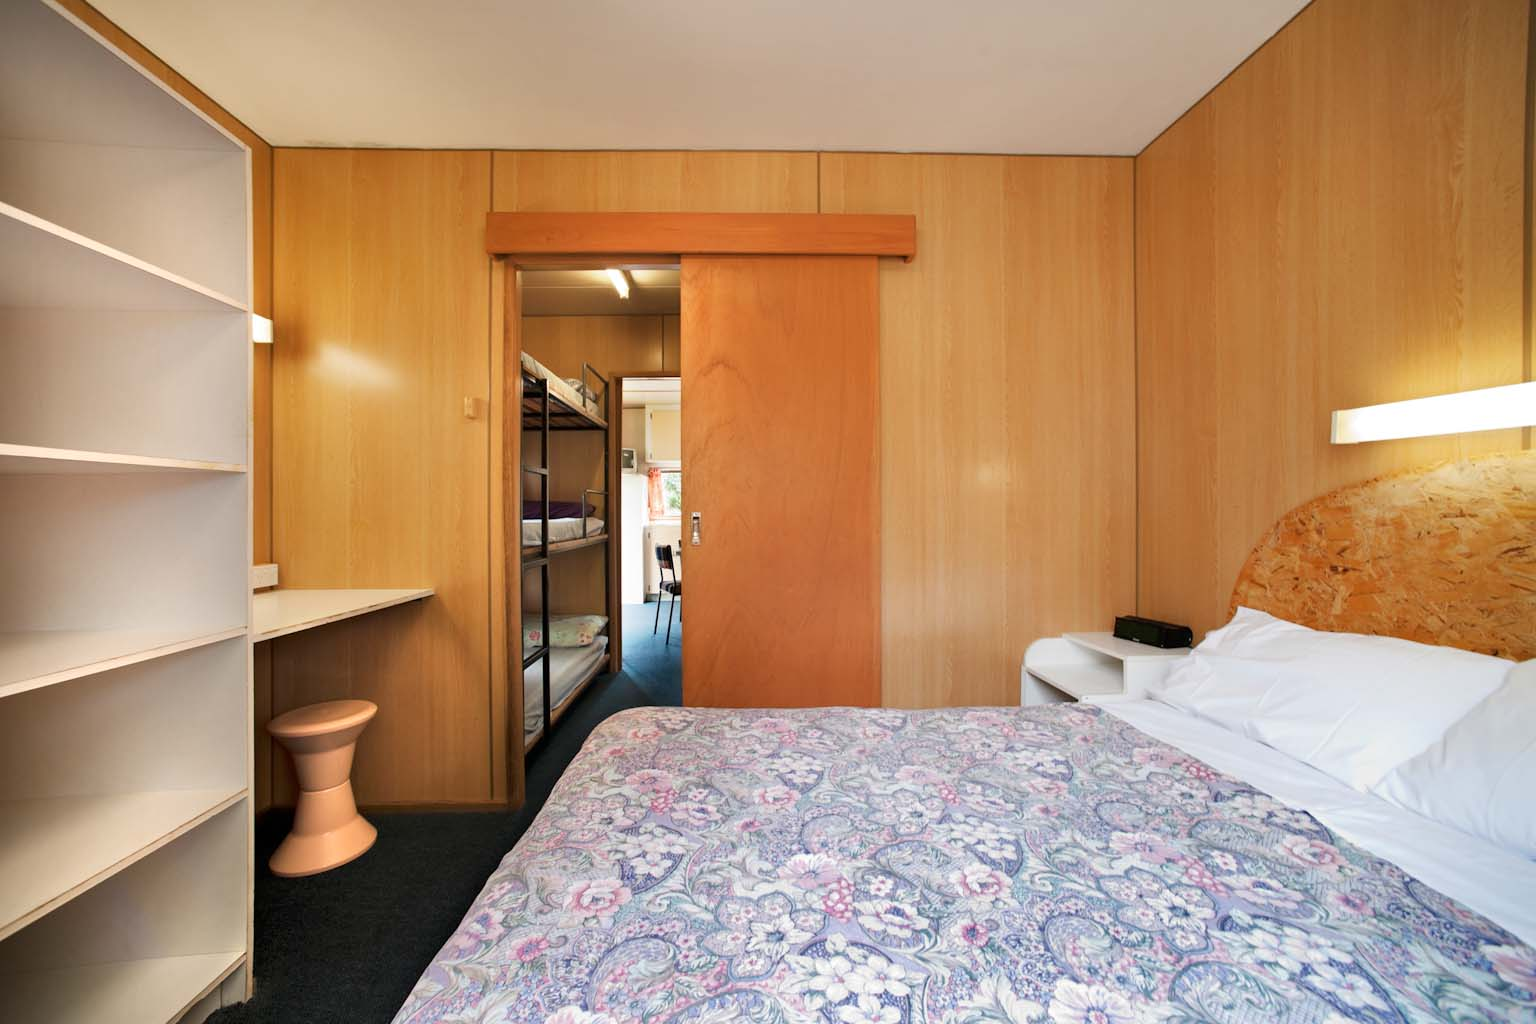 Faminly cabin accommodation burnie